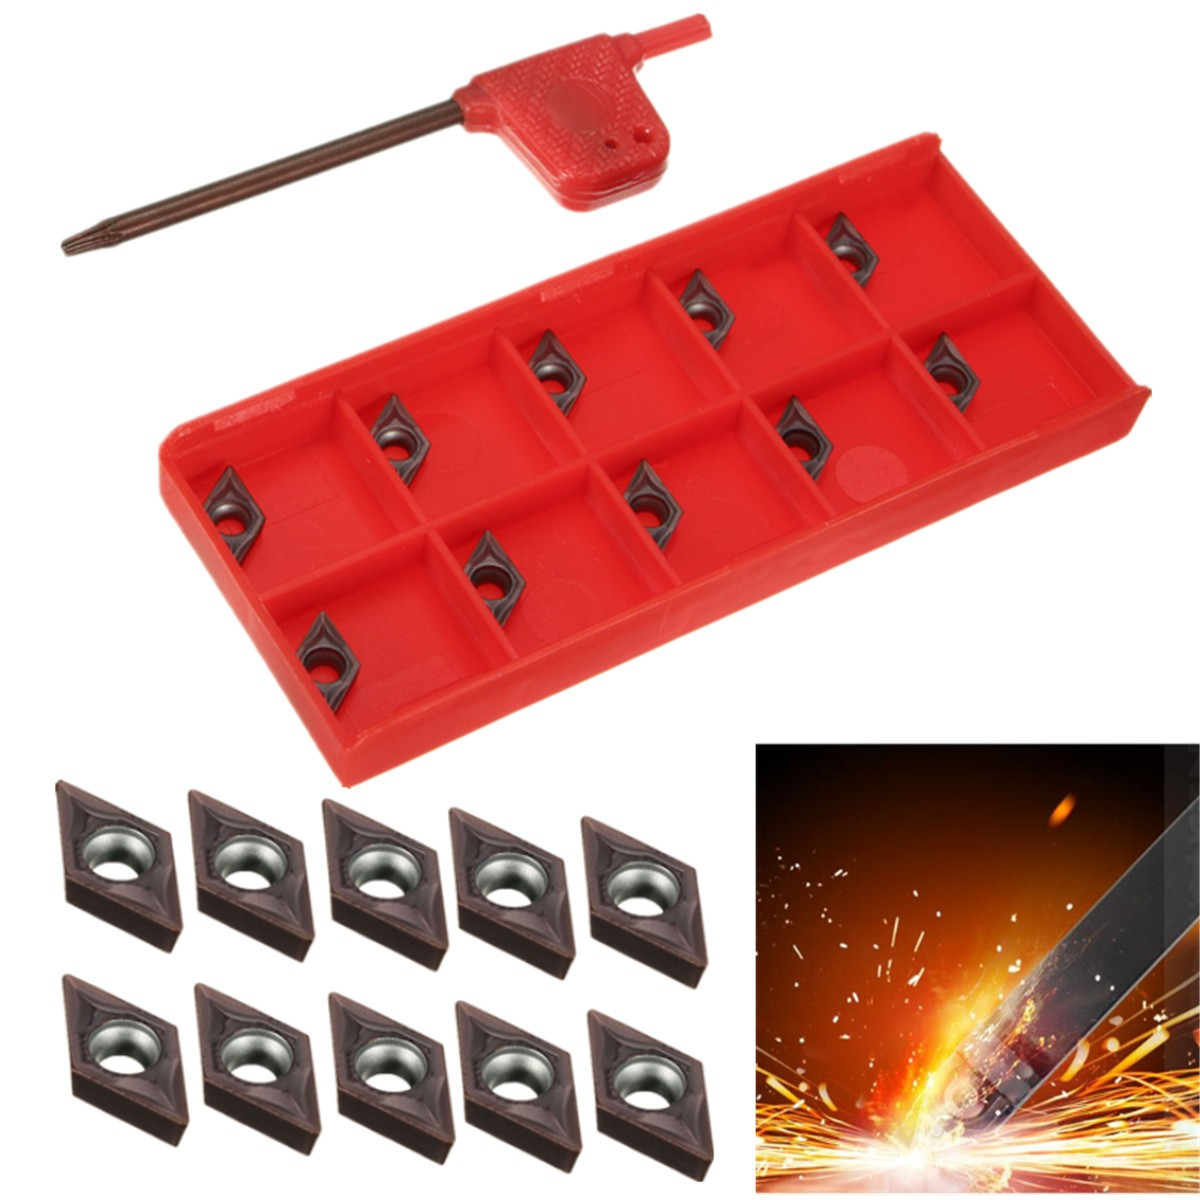 10pcs DCMT0702 EM YBC205 Carbide Inserts for Carbide Cutter Turning inserts Tool Lathe Turning Boring Tools10pcs DCMT0702 EM YBC205 Carbide Inserts for Carbide Cutter Turning inserts Tool Lathe Turning Boring Tools